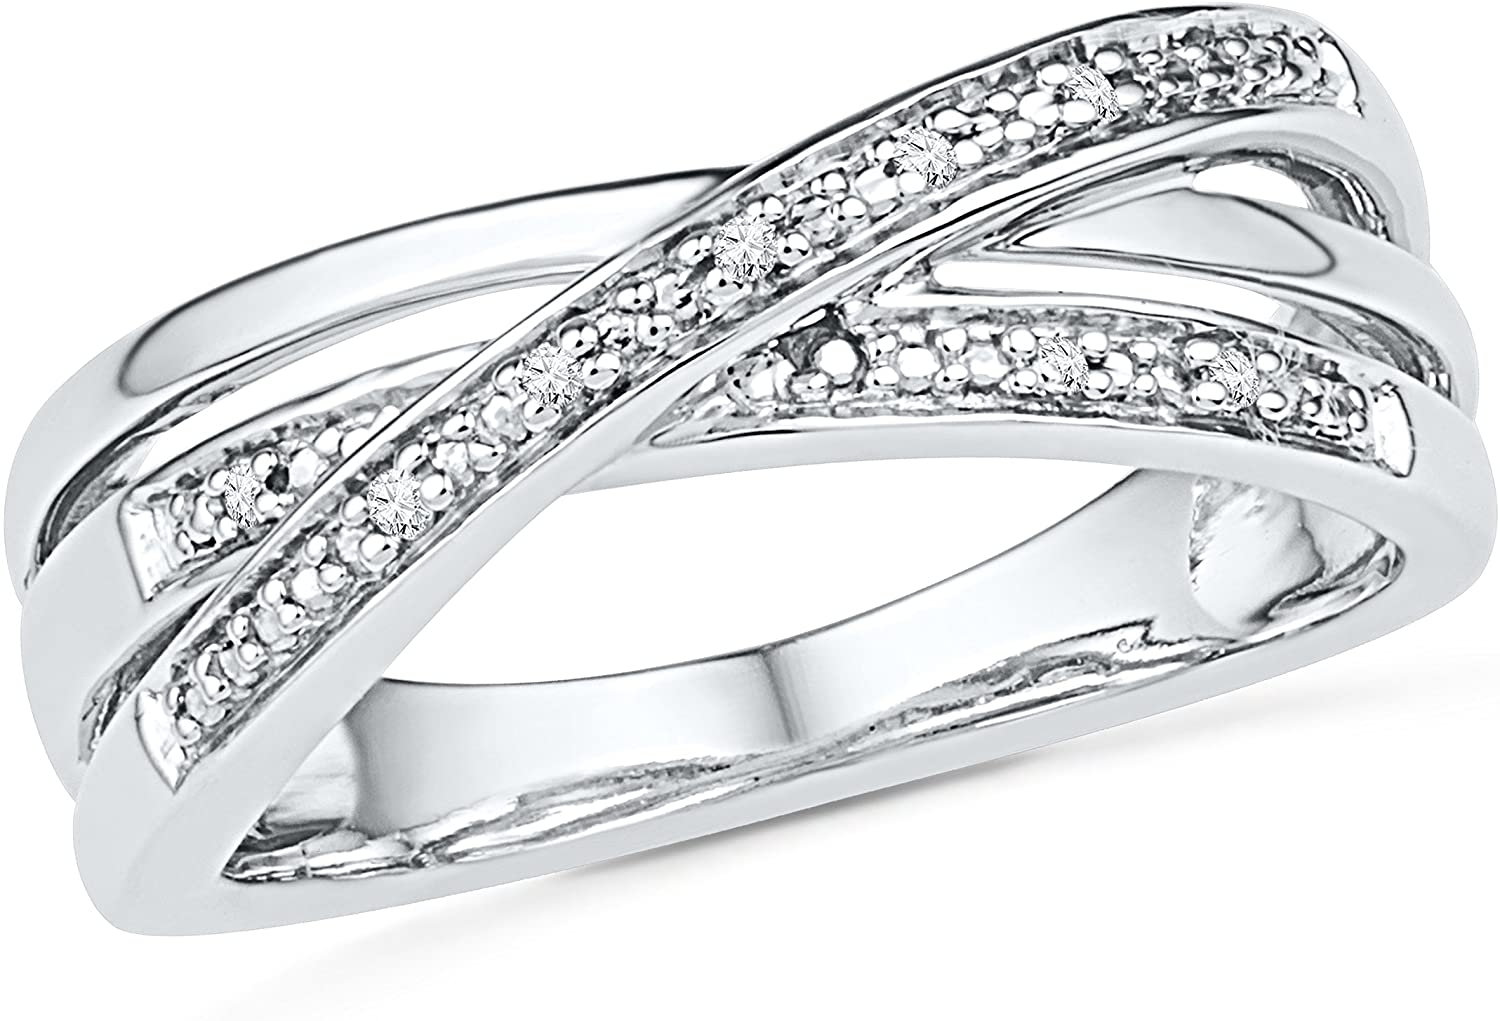 D-GOLD Sterling Silver Round Diamond Twisted Fashion Ring (0.03 cttw)